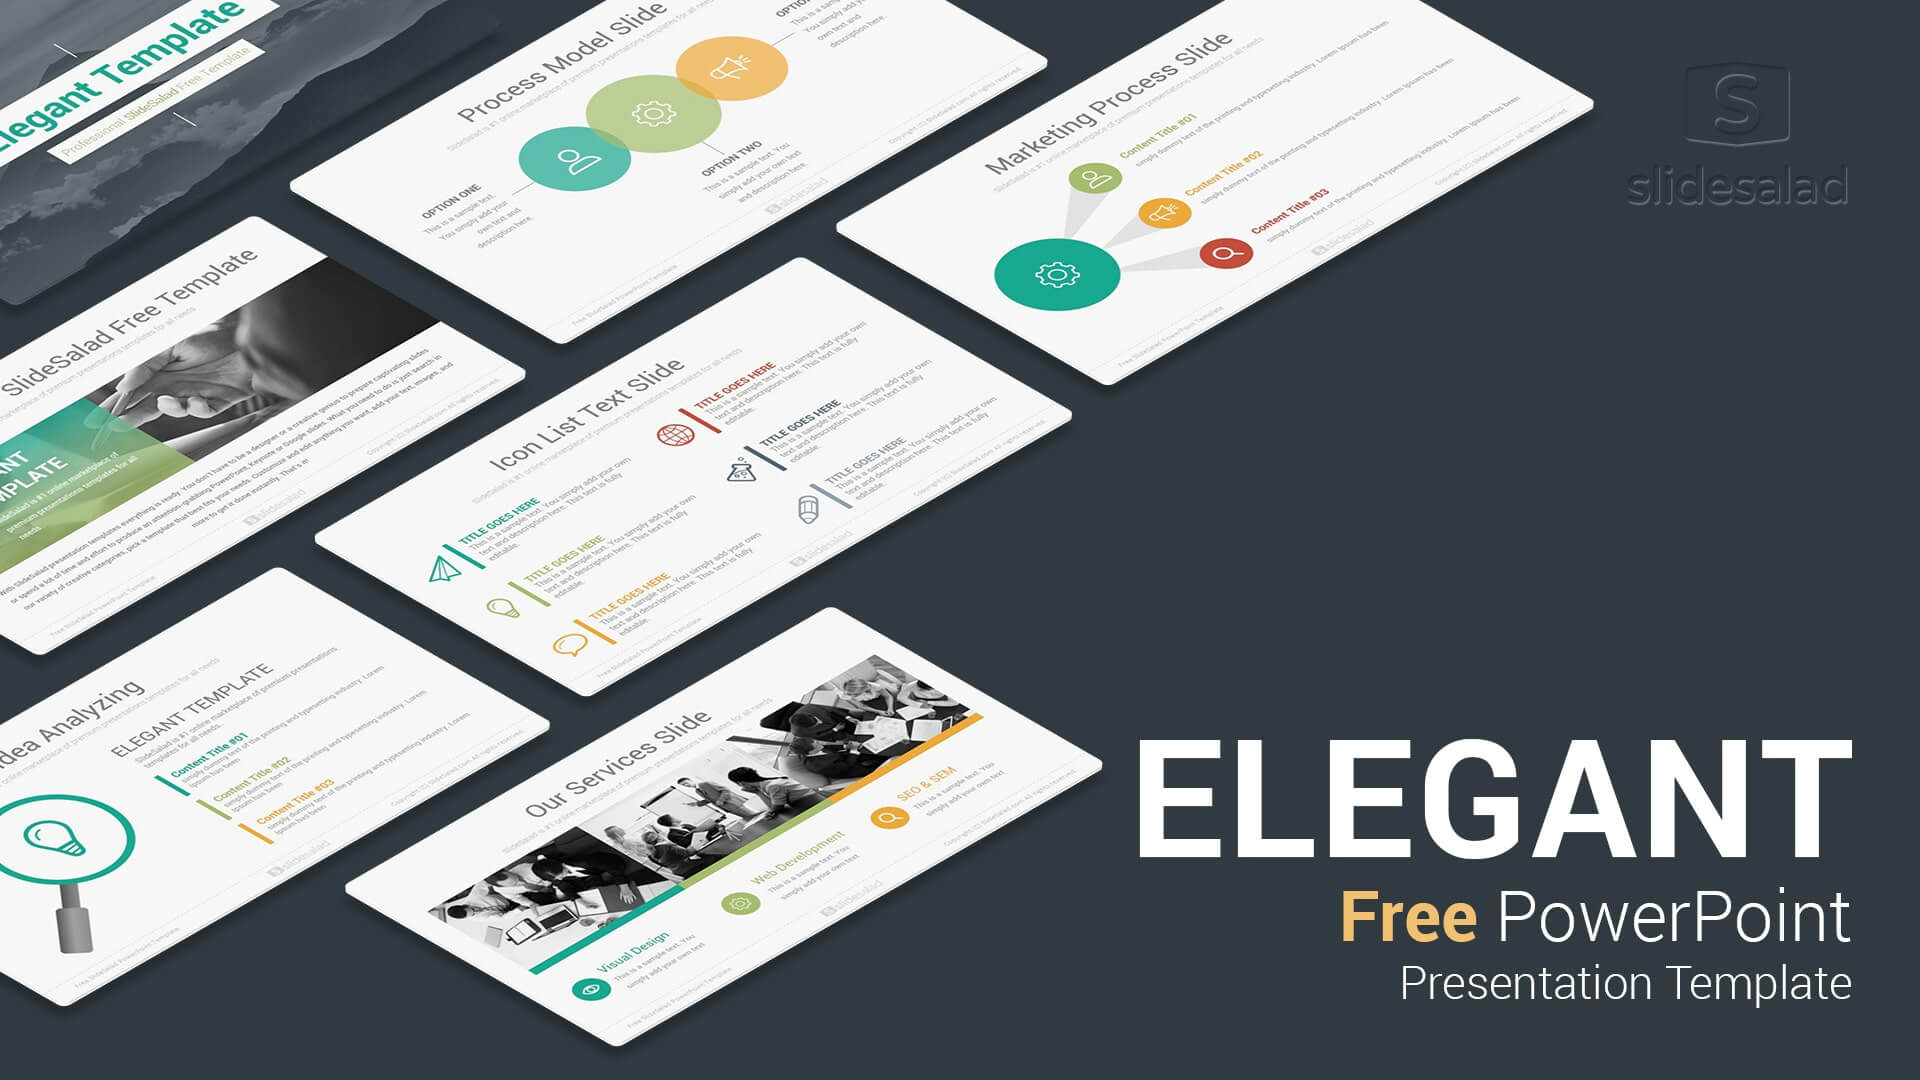 Elegant Free Download Powerpoint Templates For Presentation With Regard To Free Powerpoint Presentation Templates Downloads